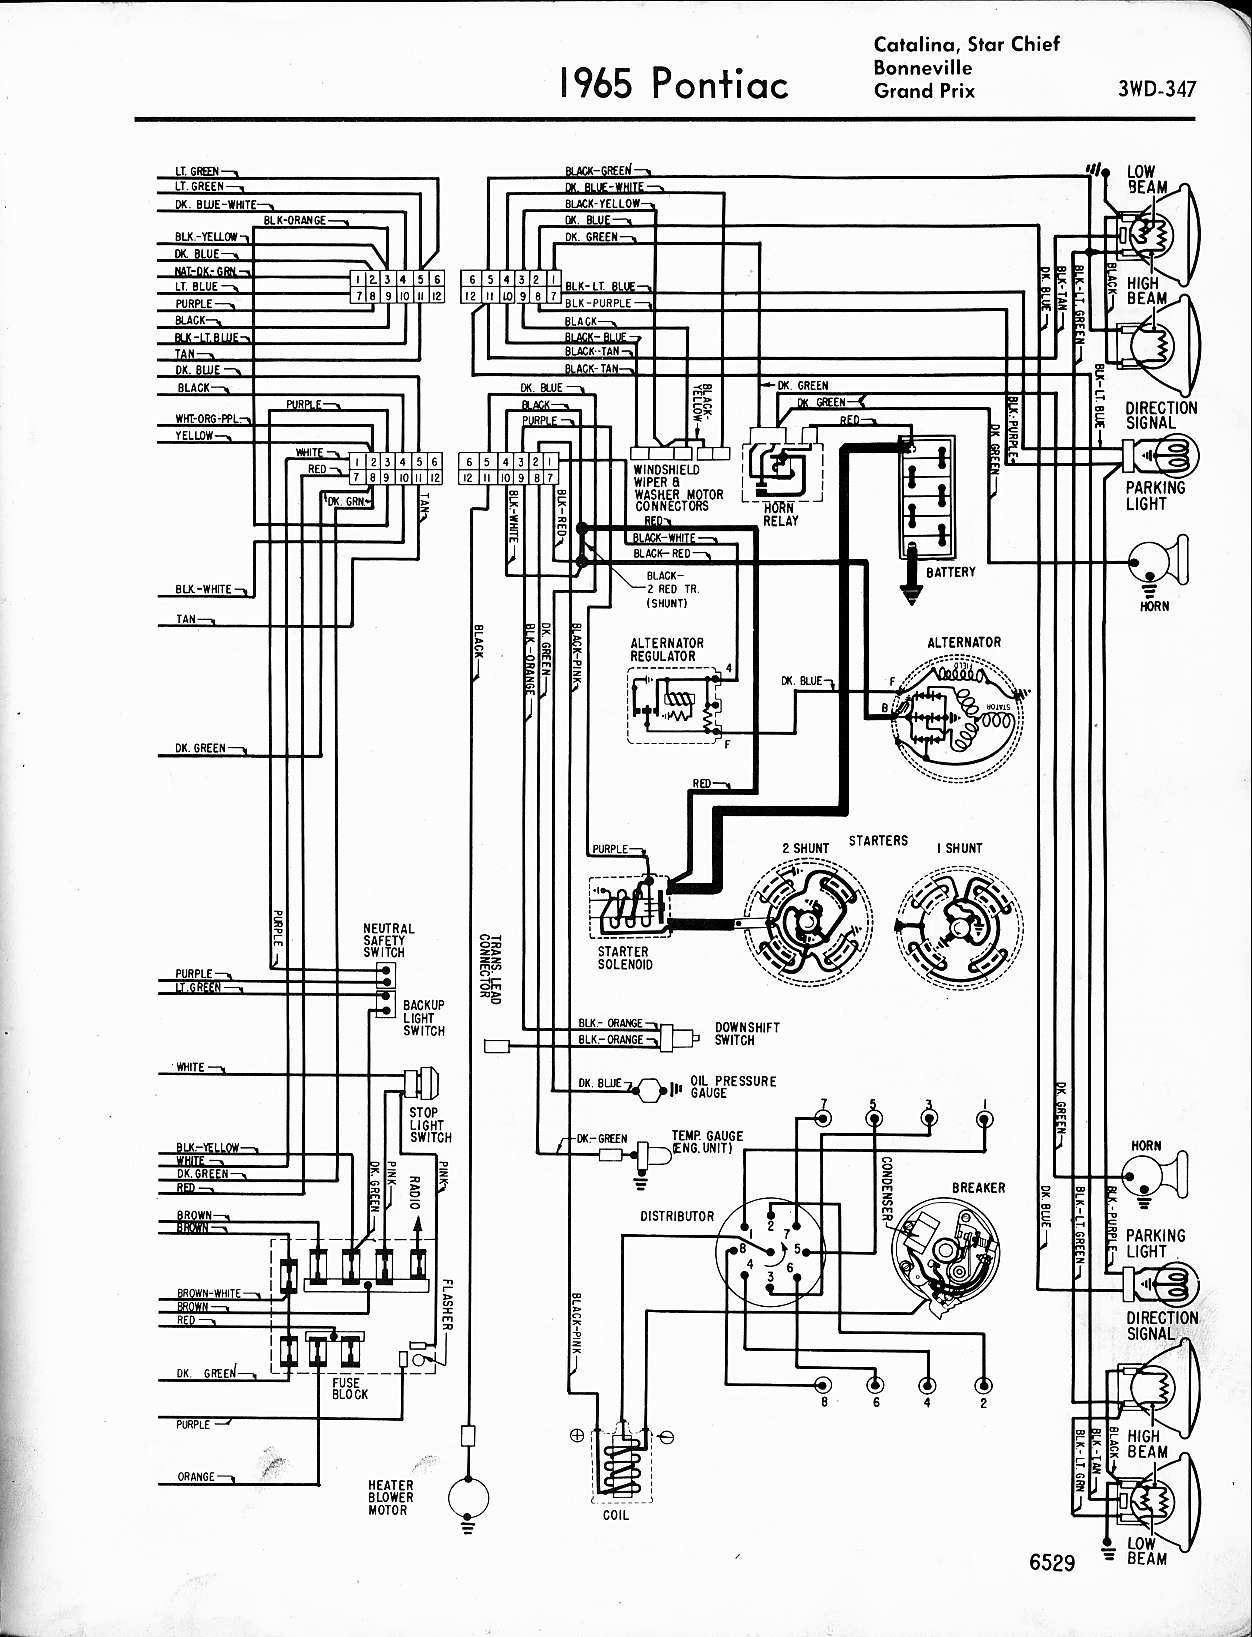 2004 Pontiac Grand Prix Engine Diagram 2006 Pontiac Grand